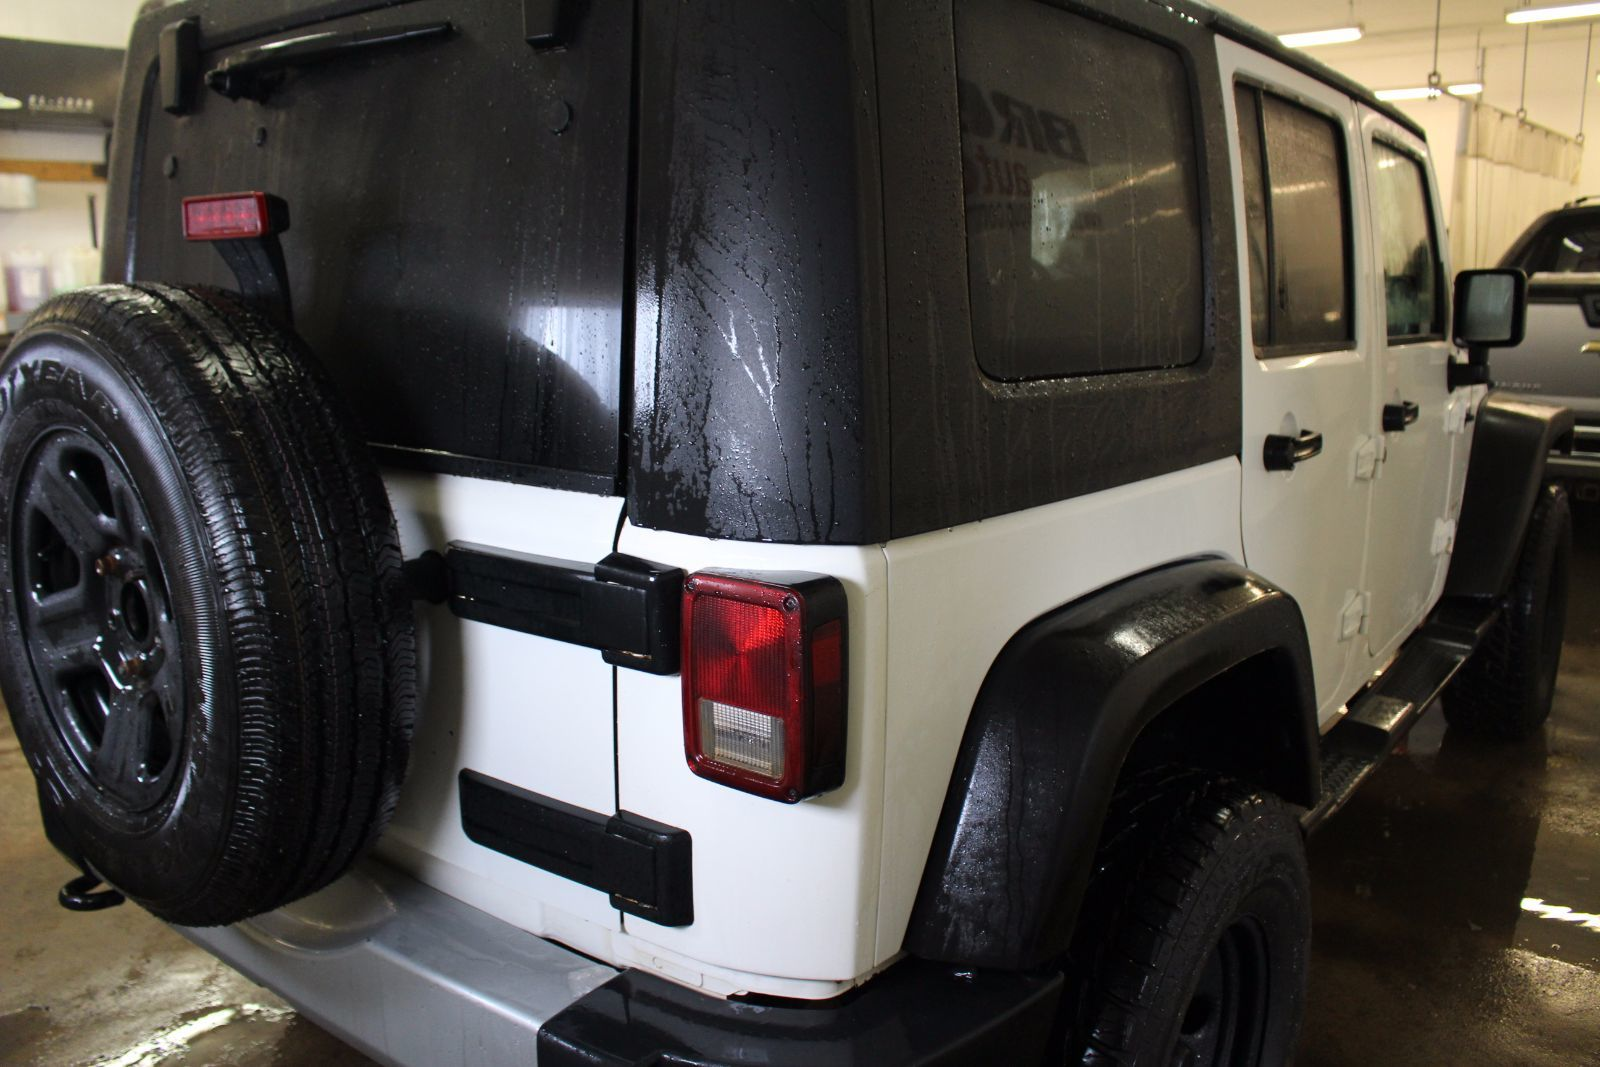 2010 jeep wrangler unlimited unlimited sahara 3 8l 6 cyl manual 4x4 4 door for sale pre owned. Black Bedroom Furniture Sets. Home Design Ideas